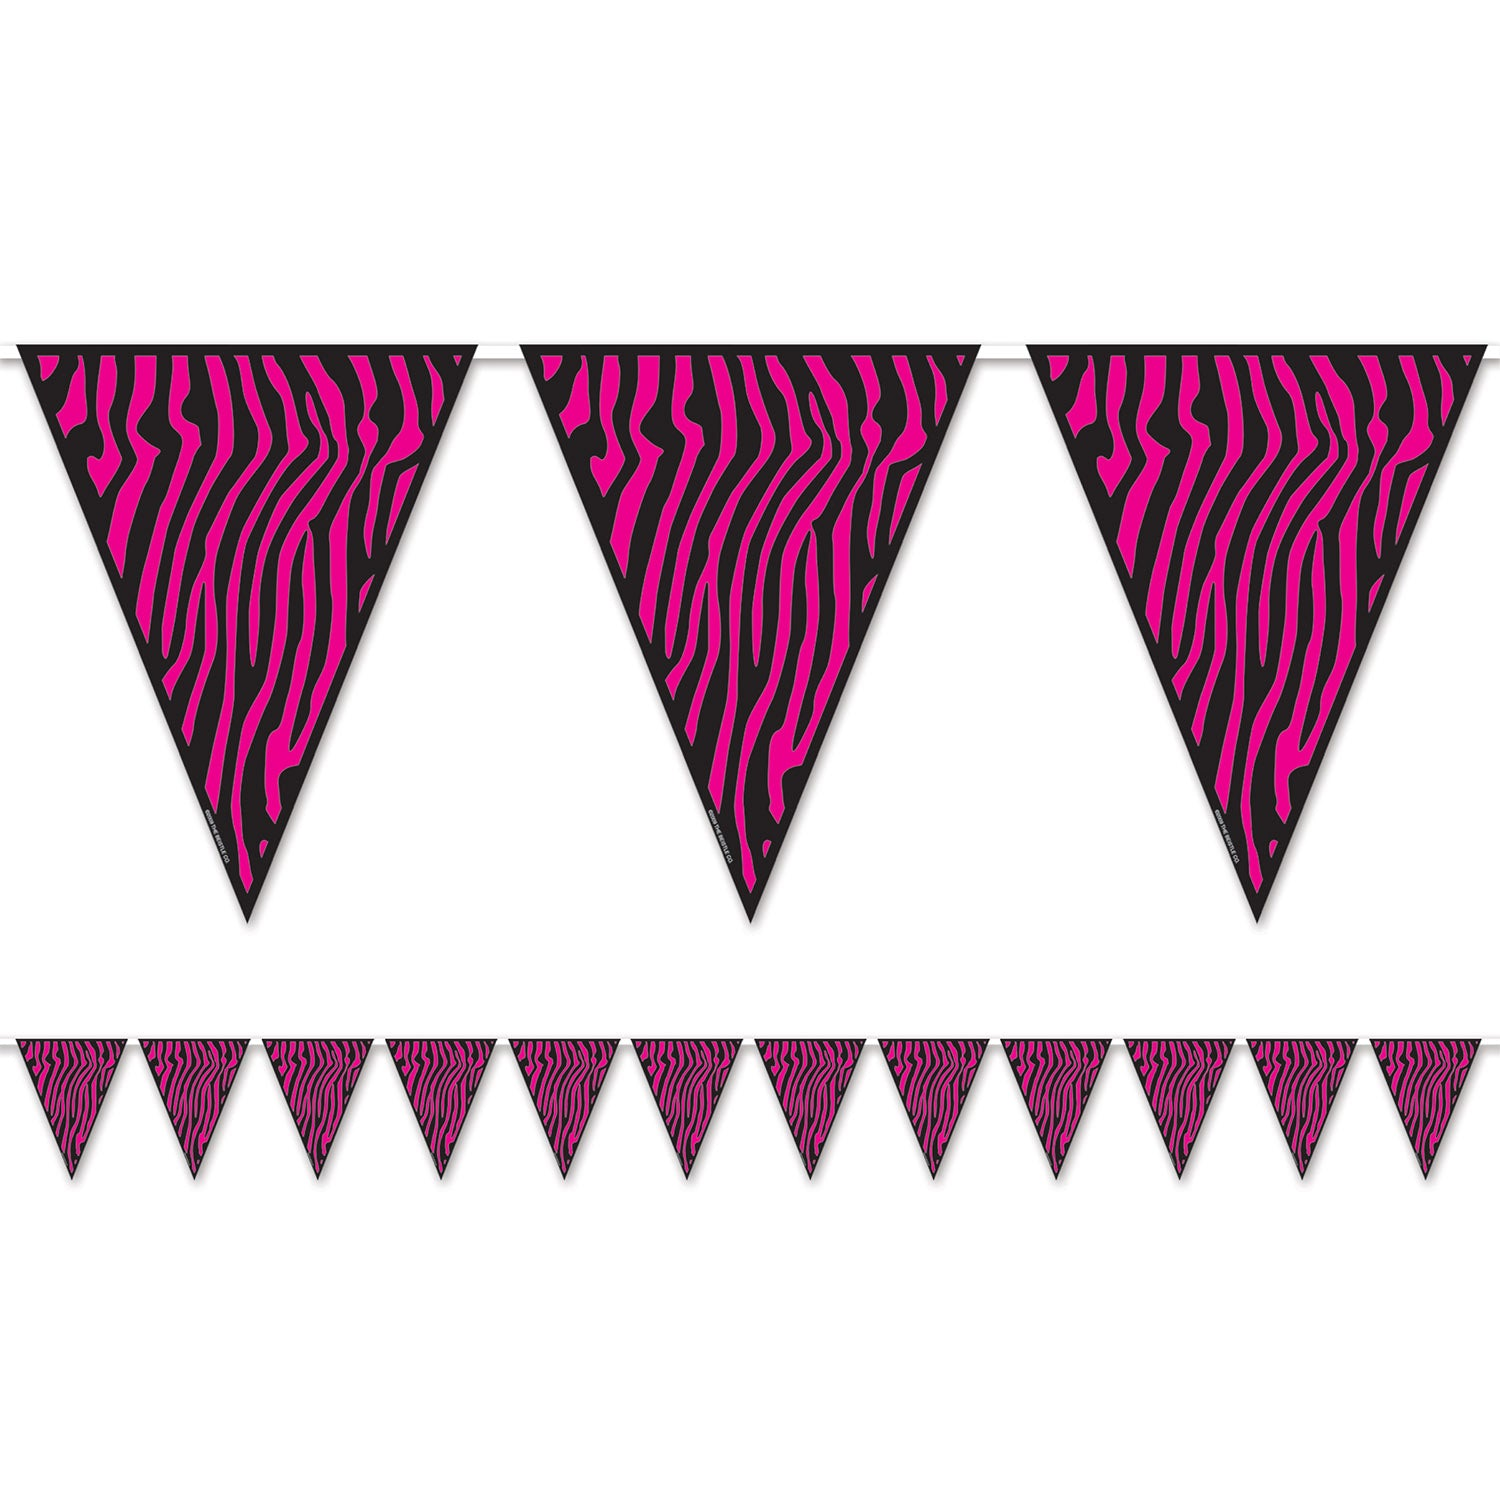 Zebra Print Pennant Banner by Beistle - Sweet 16 Birthday Decorations